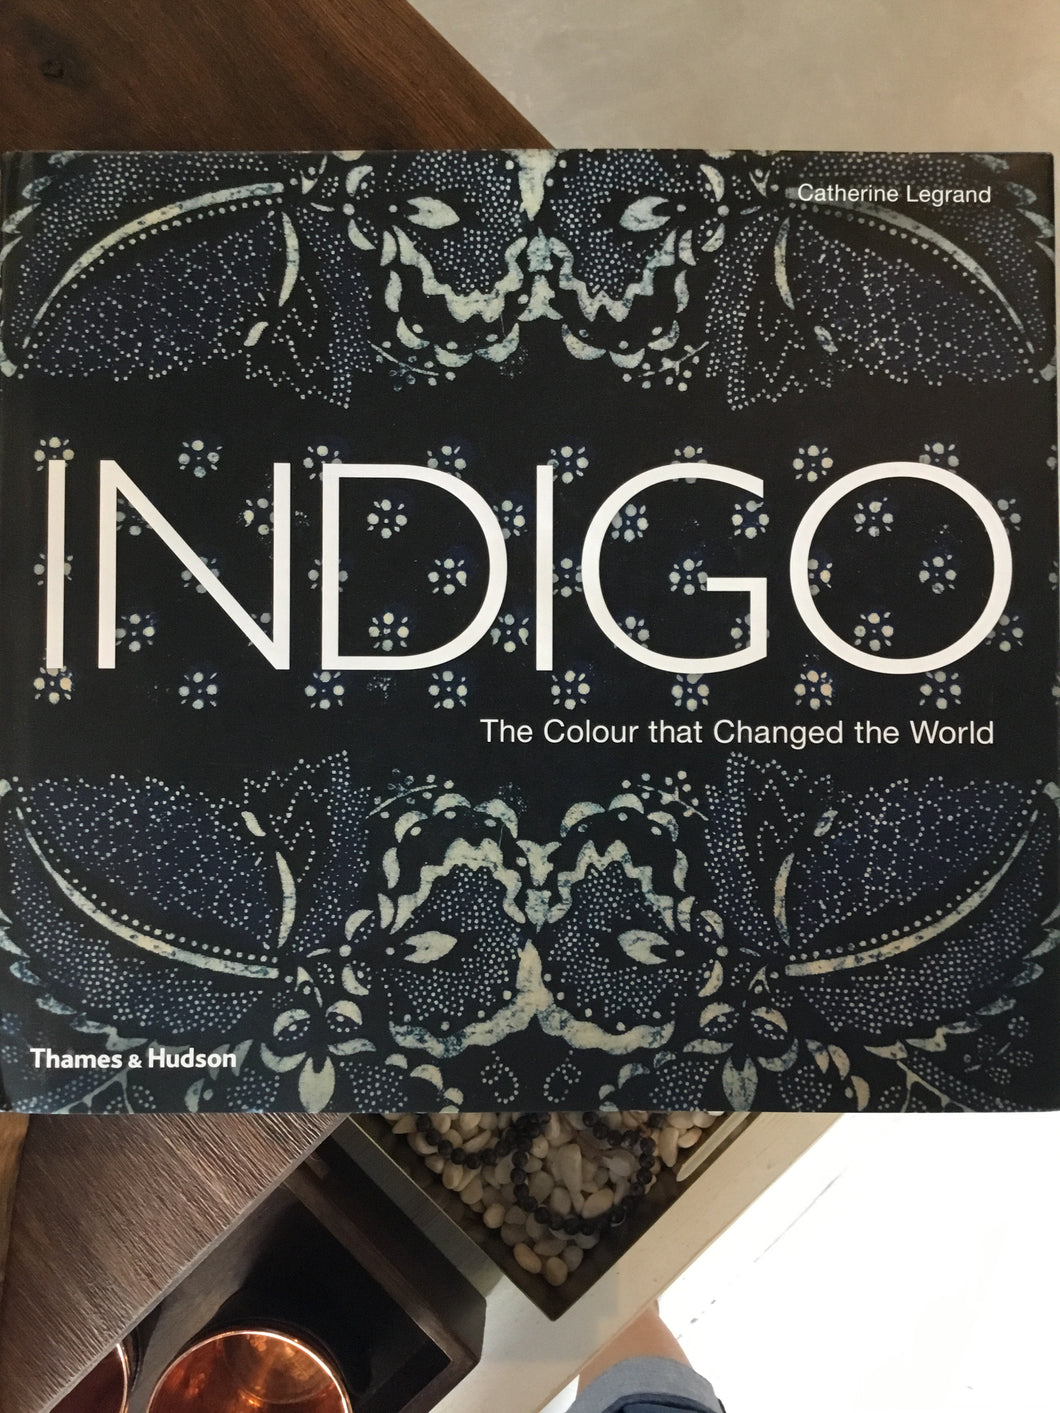 Indigo The Colour that Changed the World